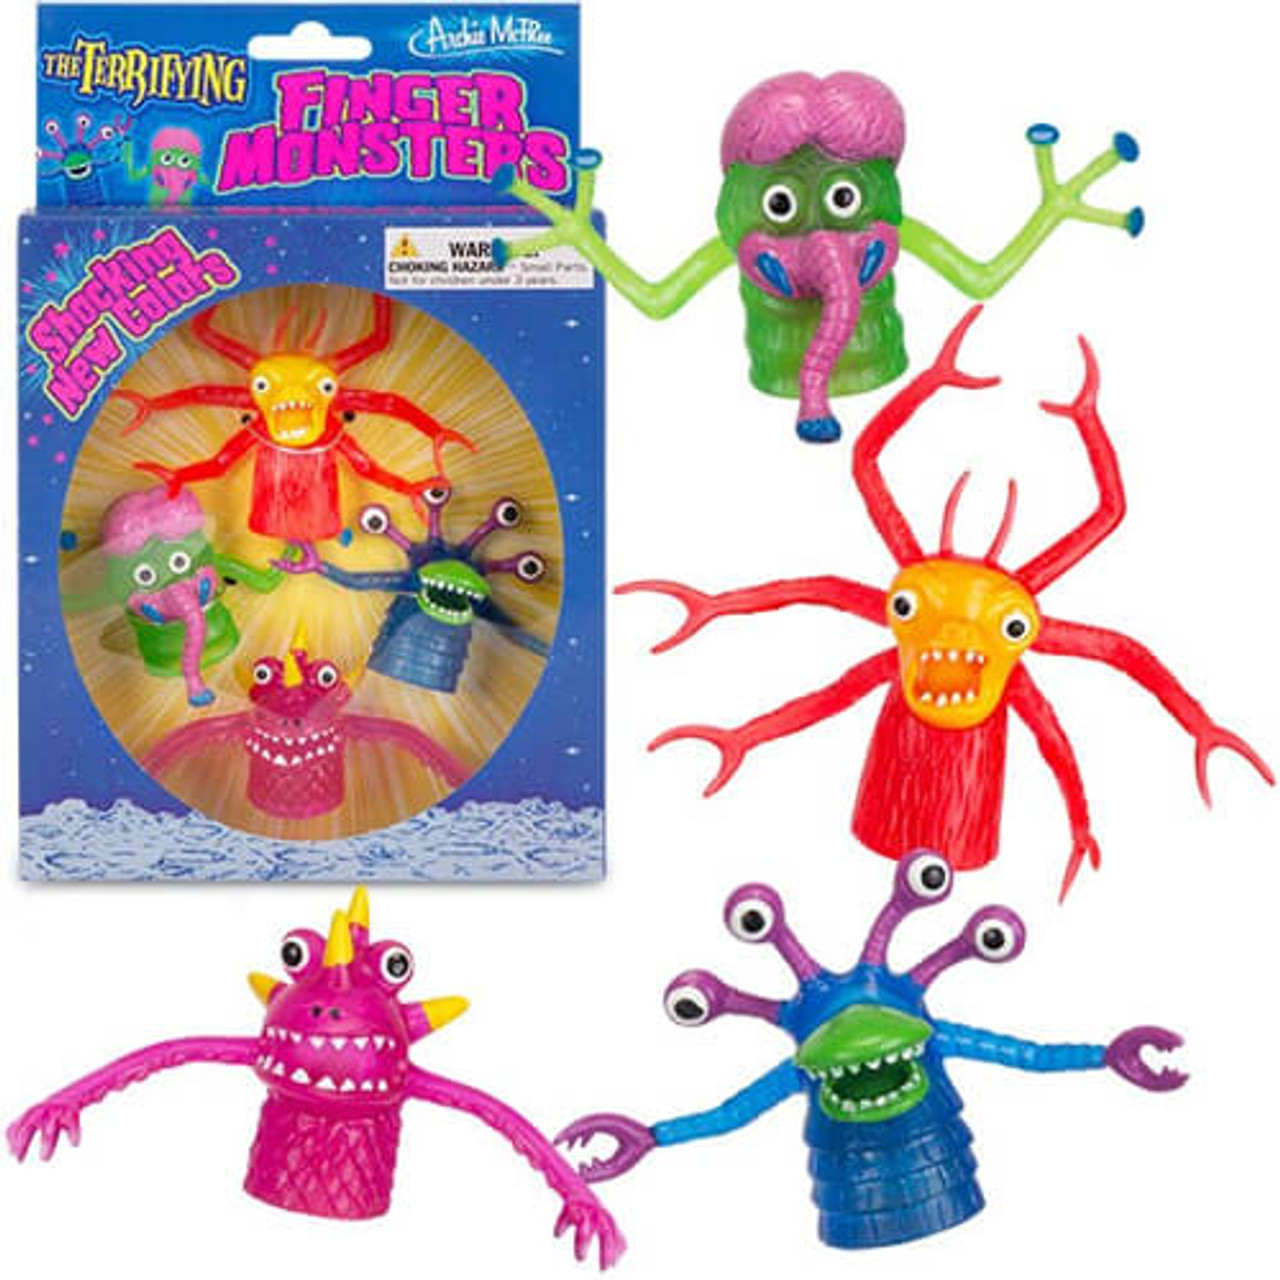 DELUXE FINGER MONSTERS BOXED SET OF 4